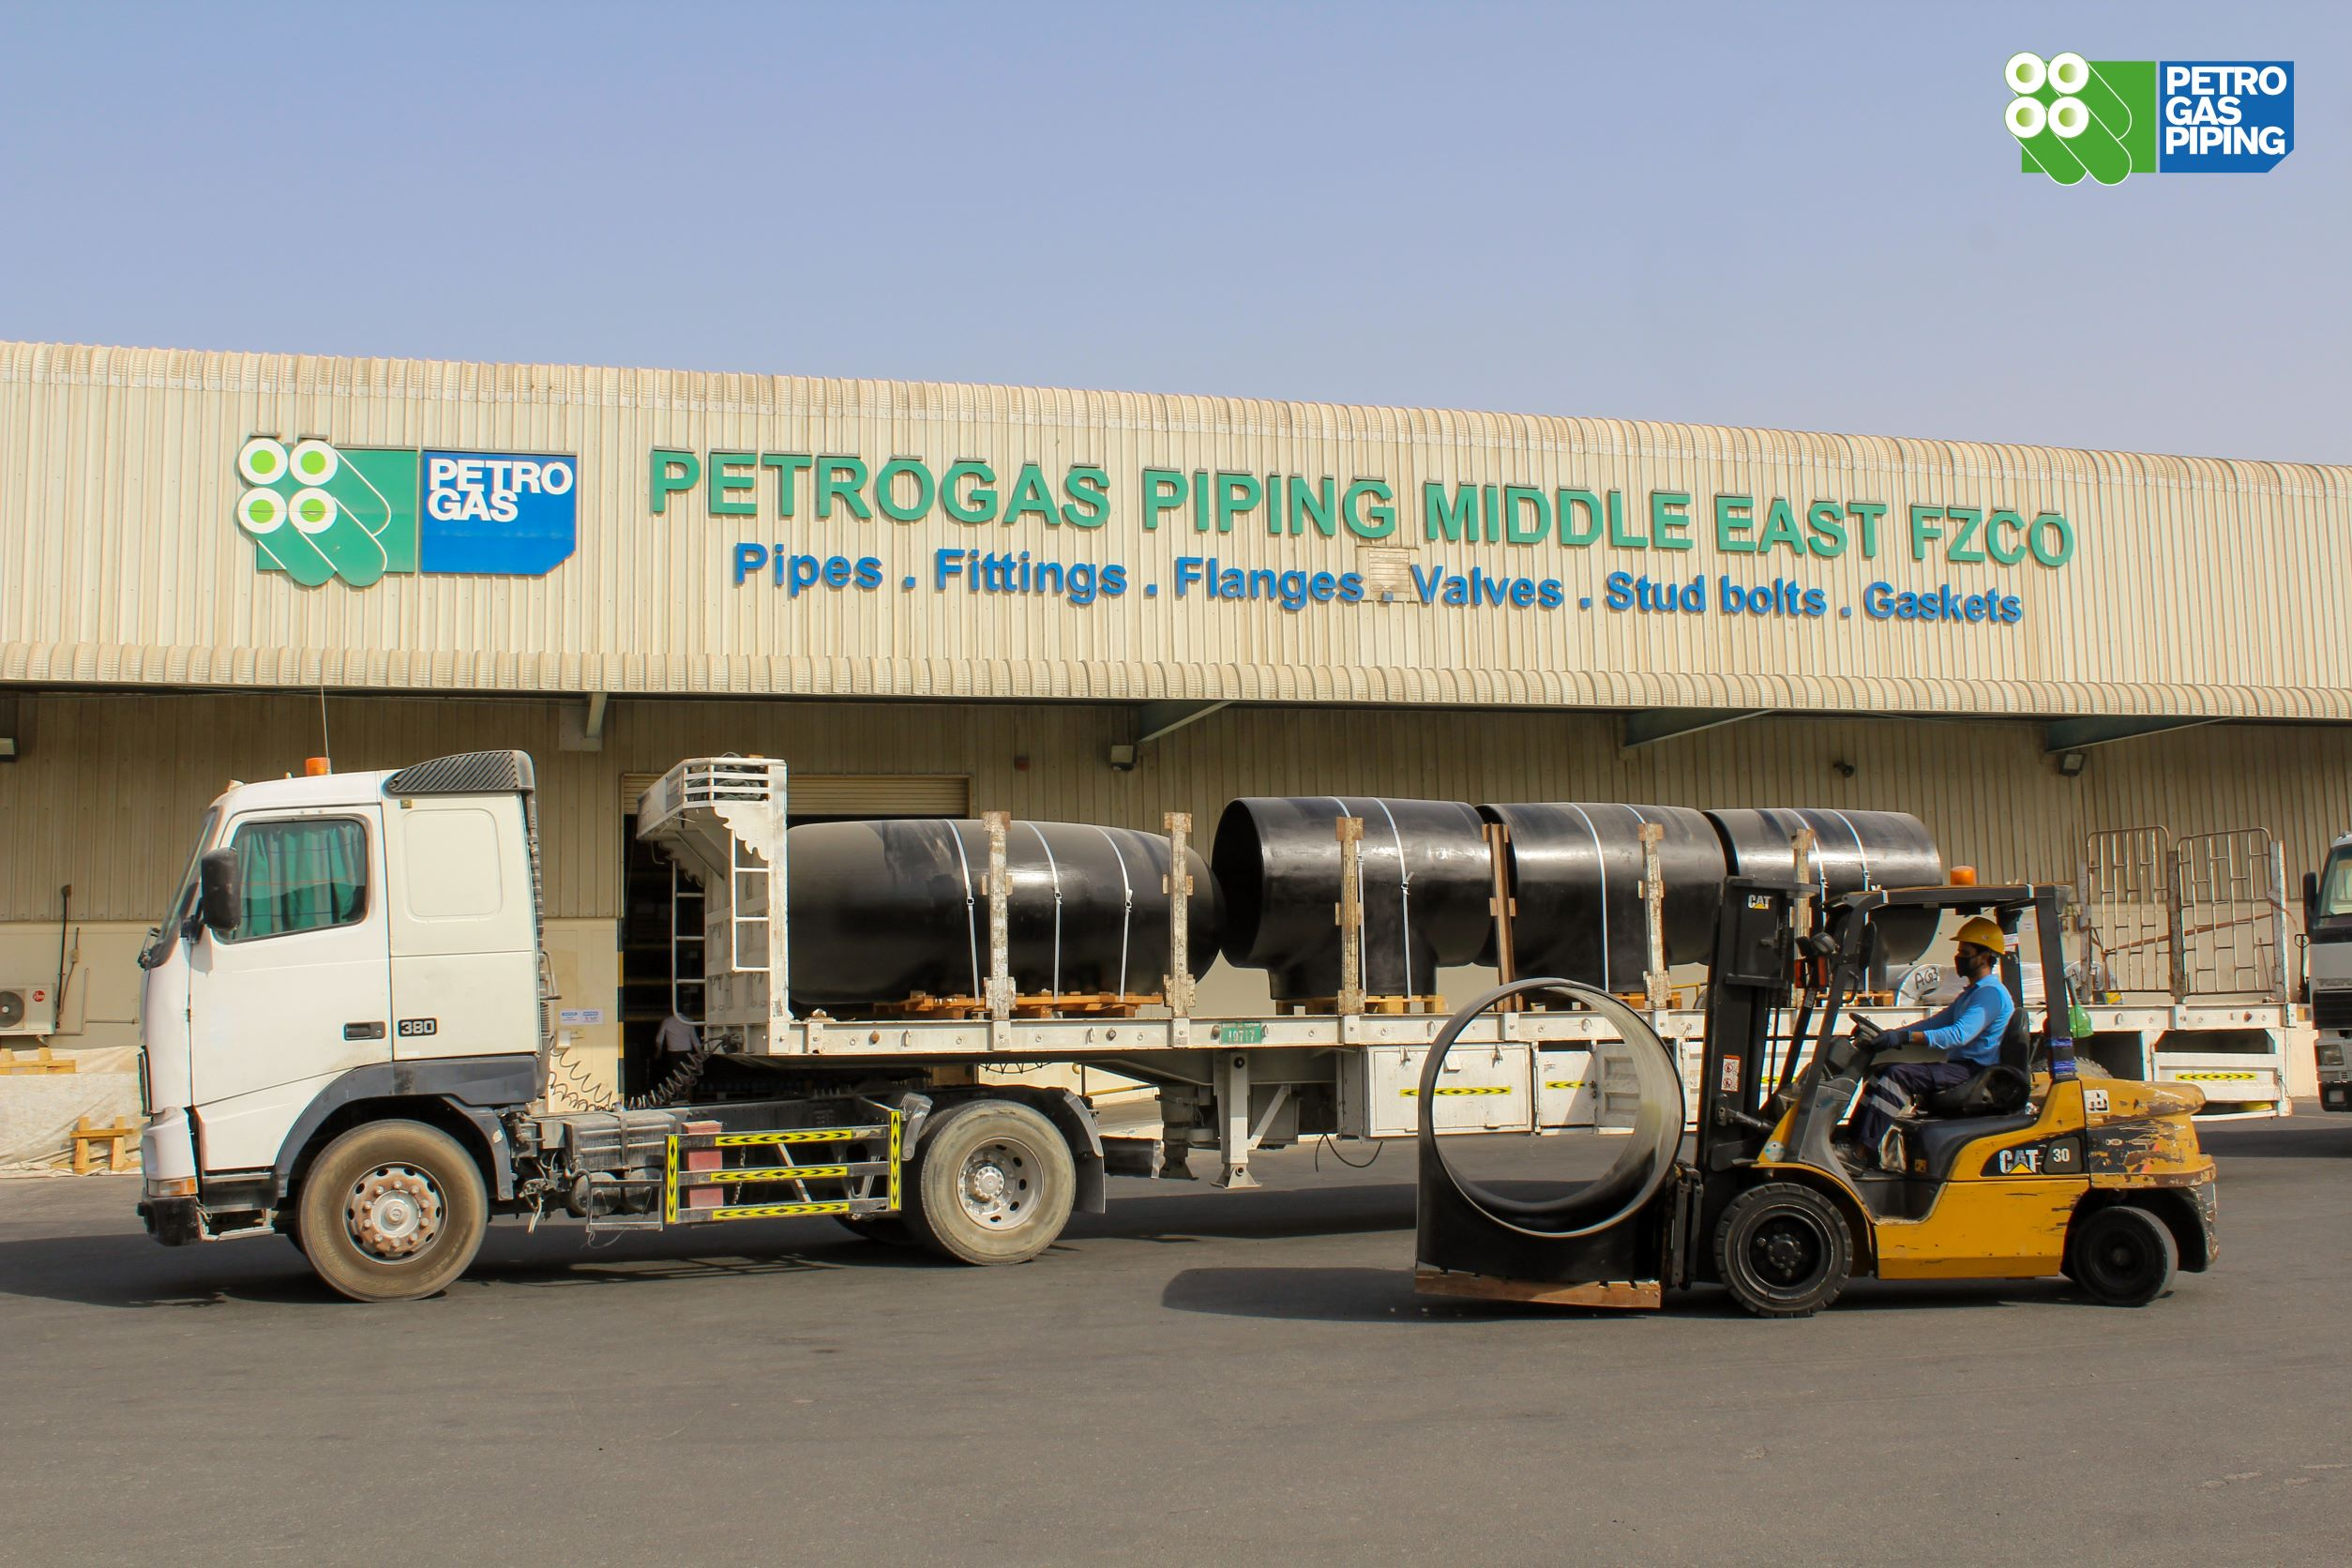 Creating a new normal with Petrogas Piping